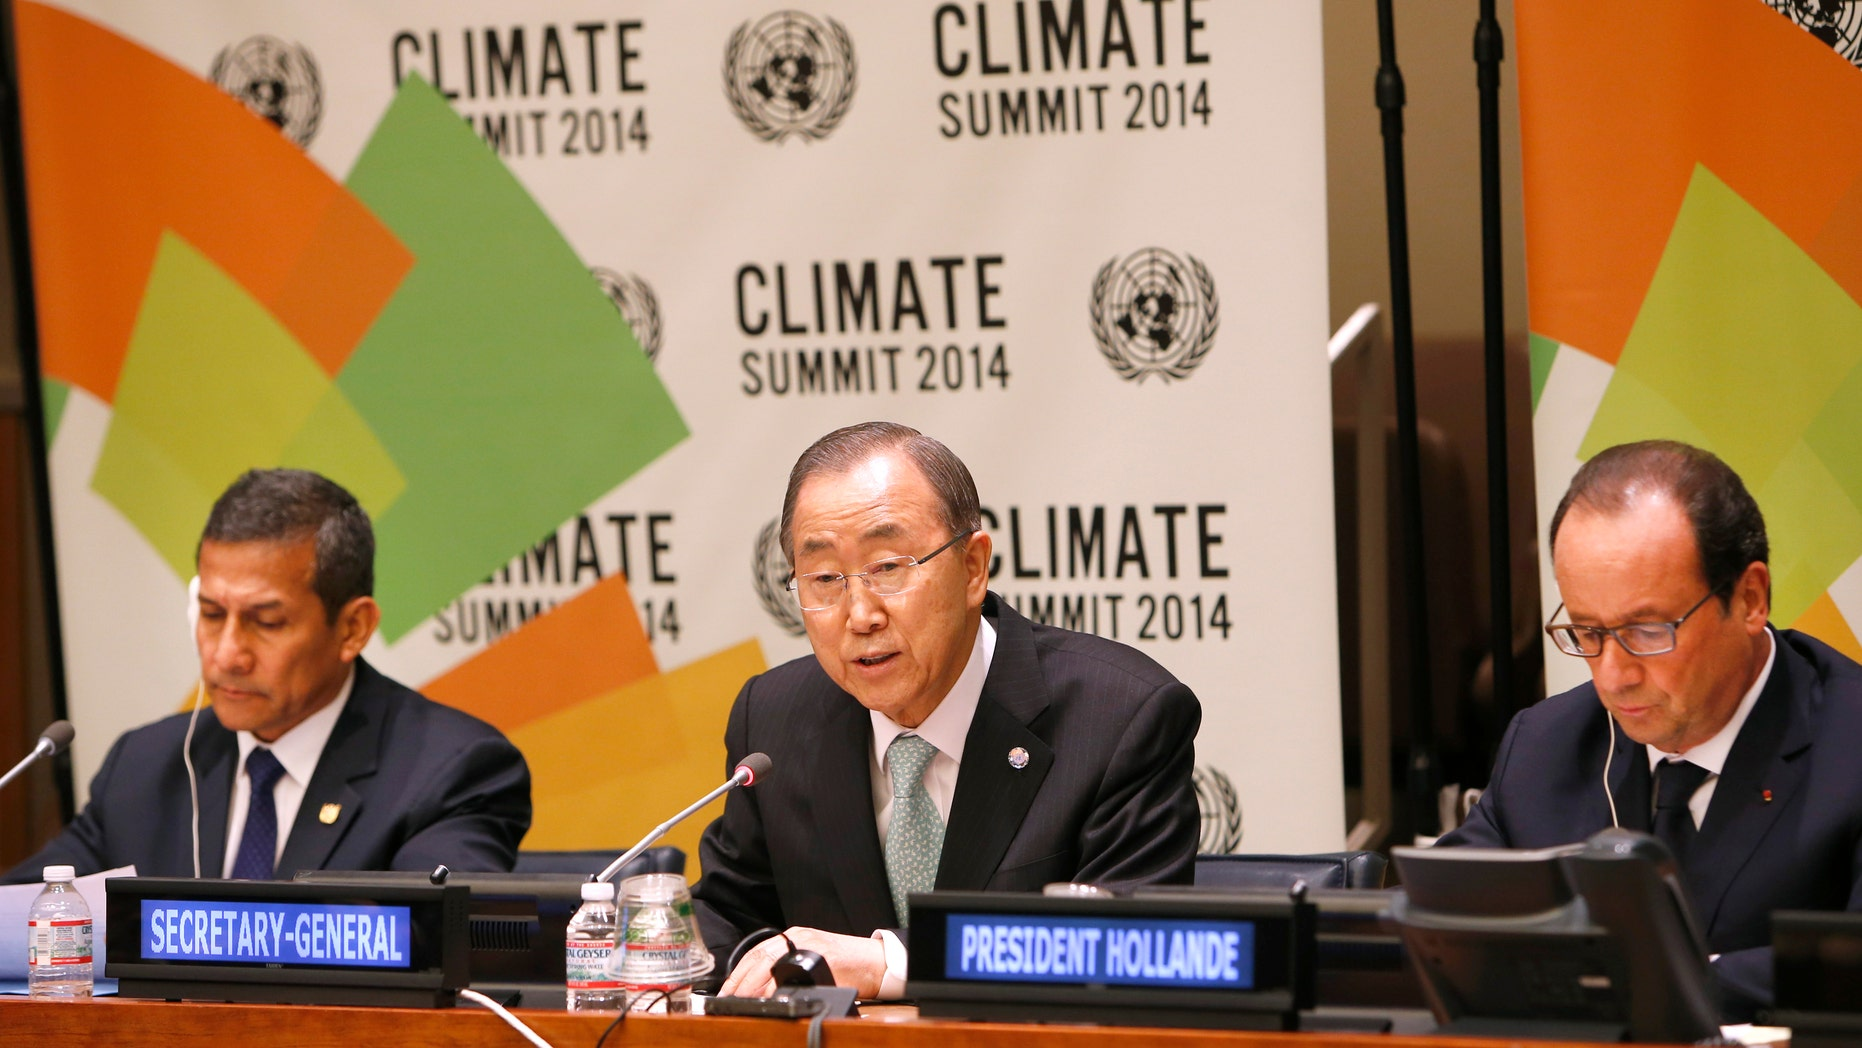 U.N. Secretary-General Ban Ki-moon, center, is joined by President Ollanta Humala of Peru, left, and President Francois Hollande of France at a news conference on climate change.